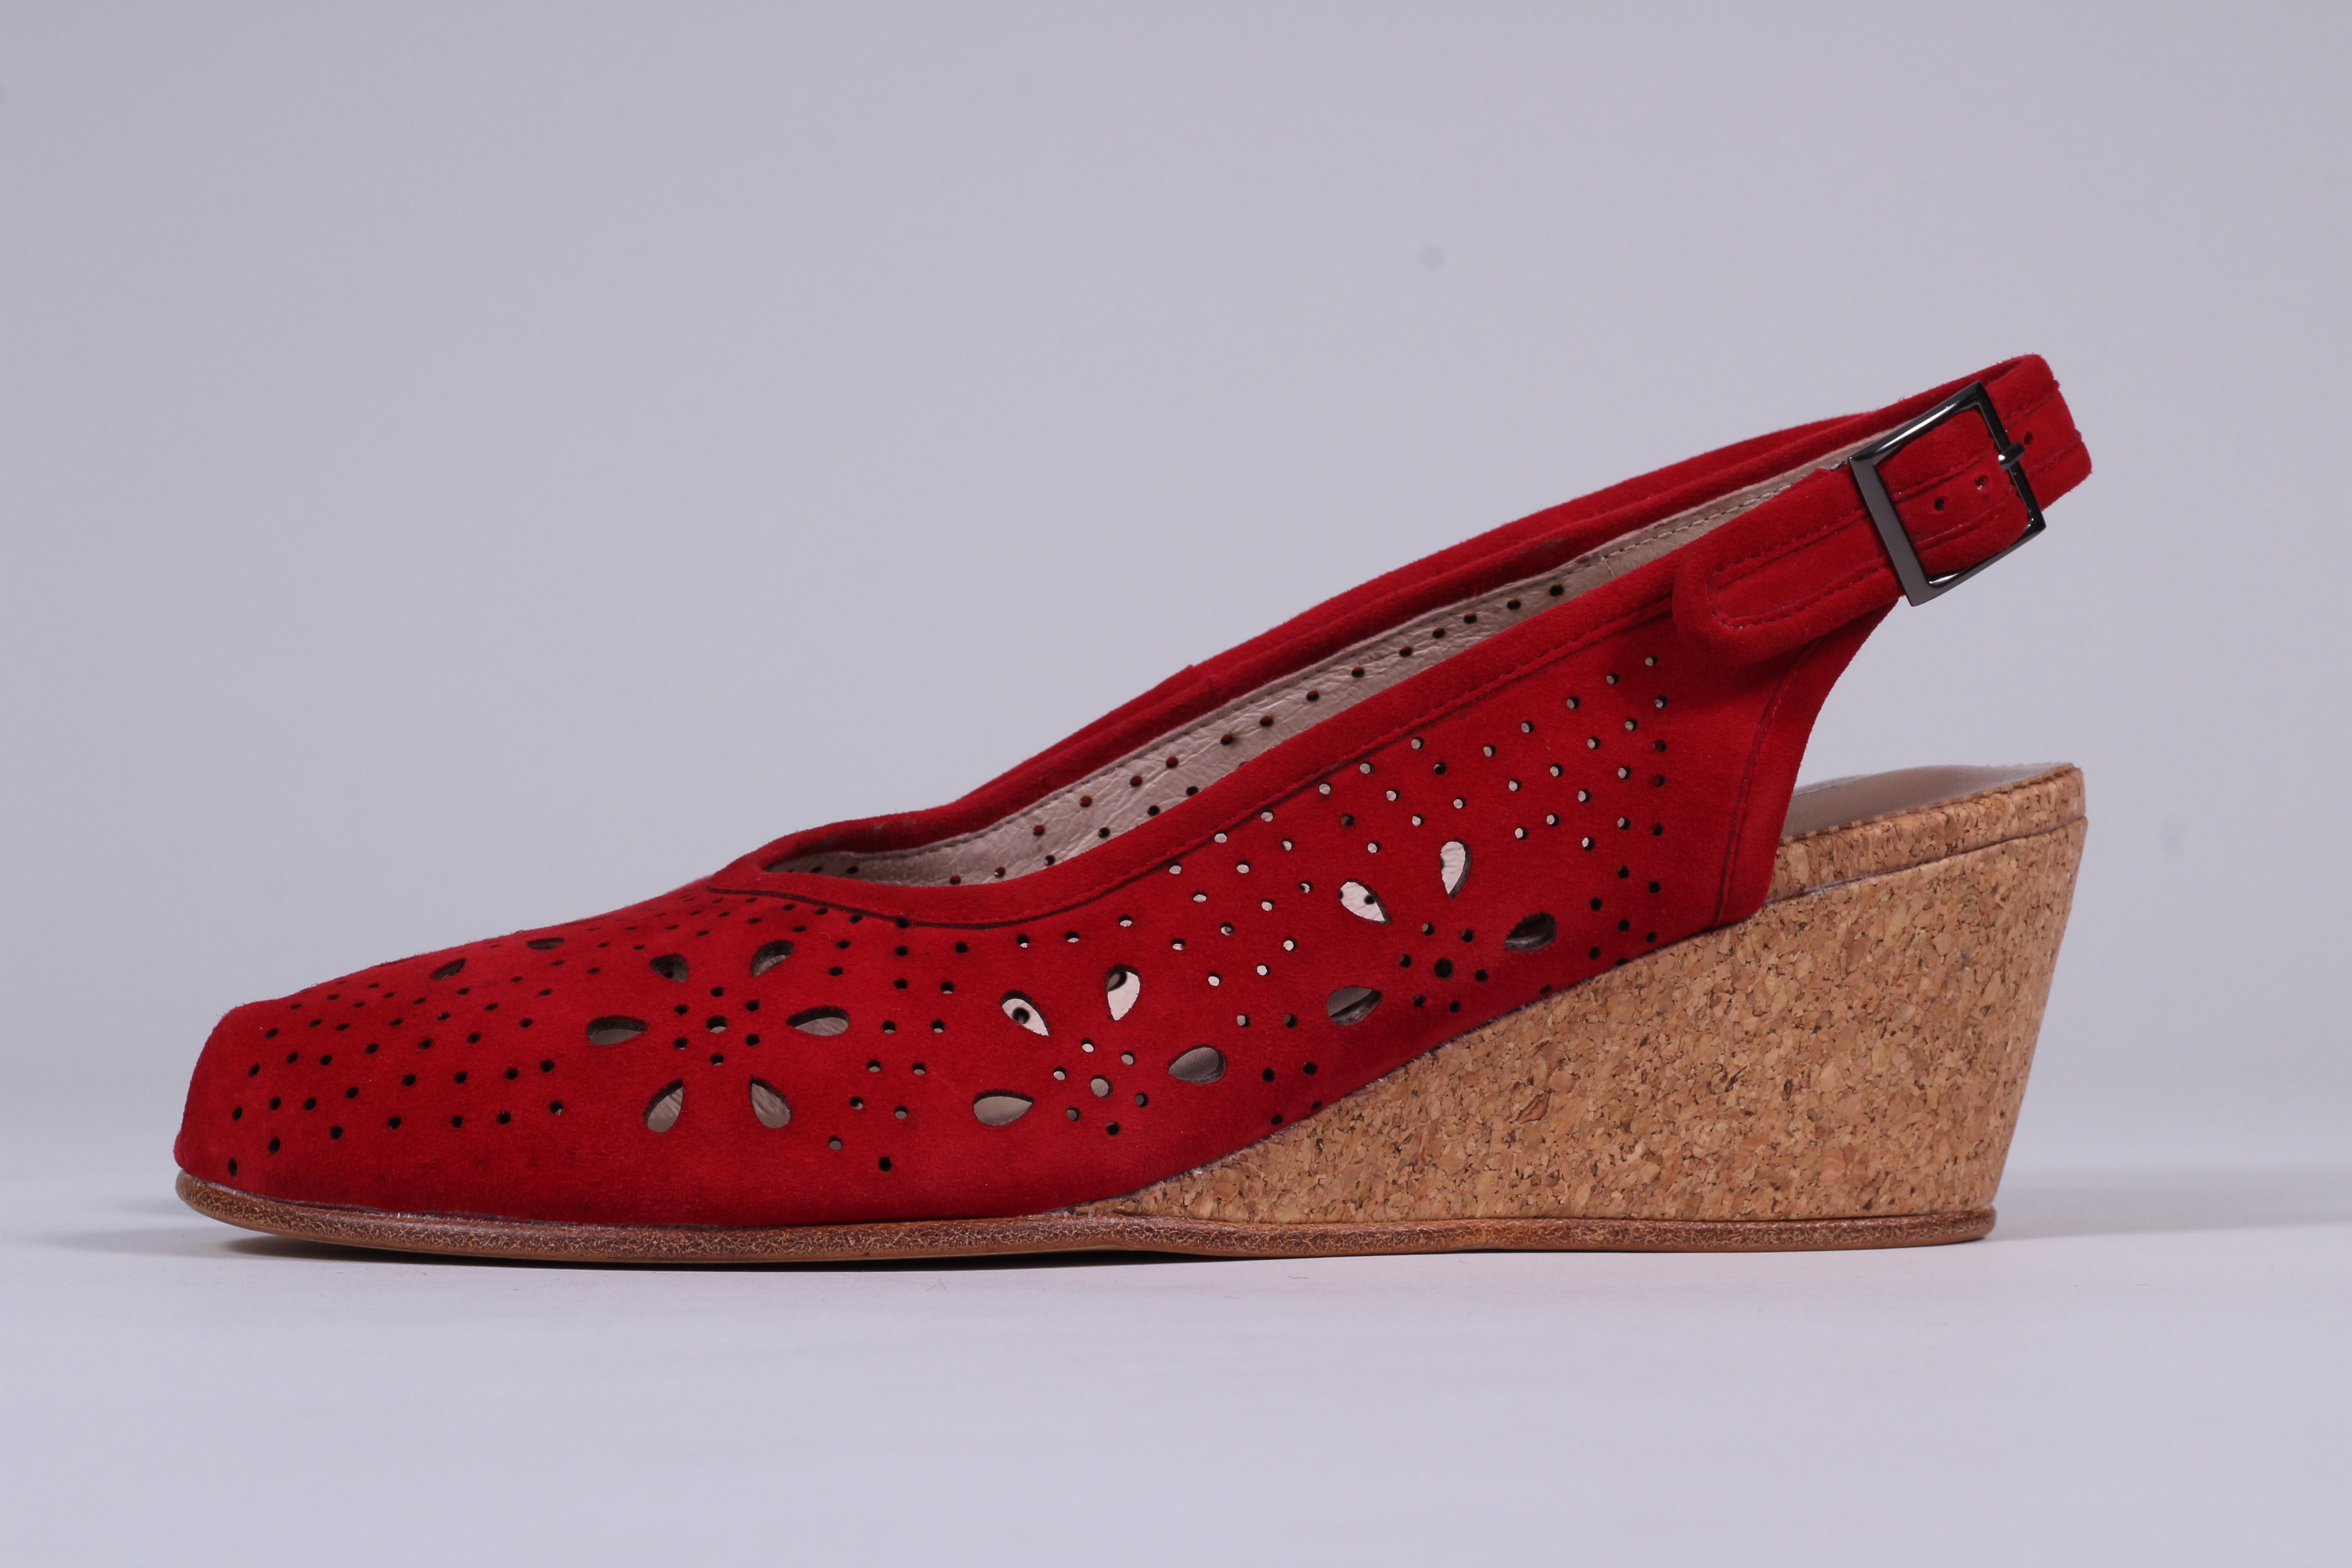 Suede wedge sandals 1940s - 50s style, red